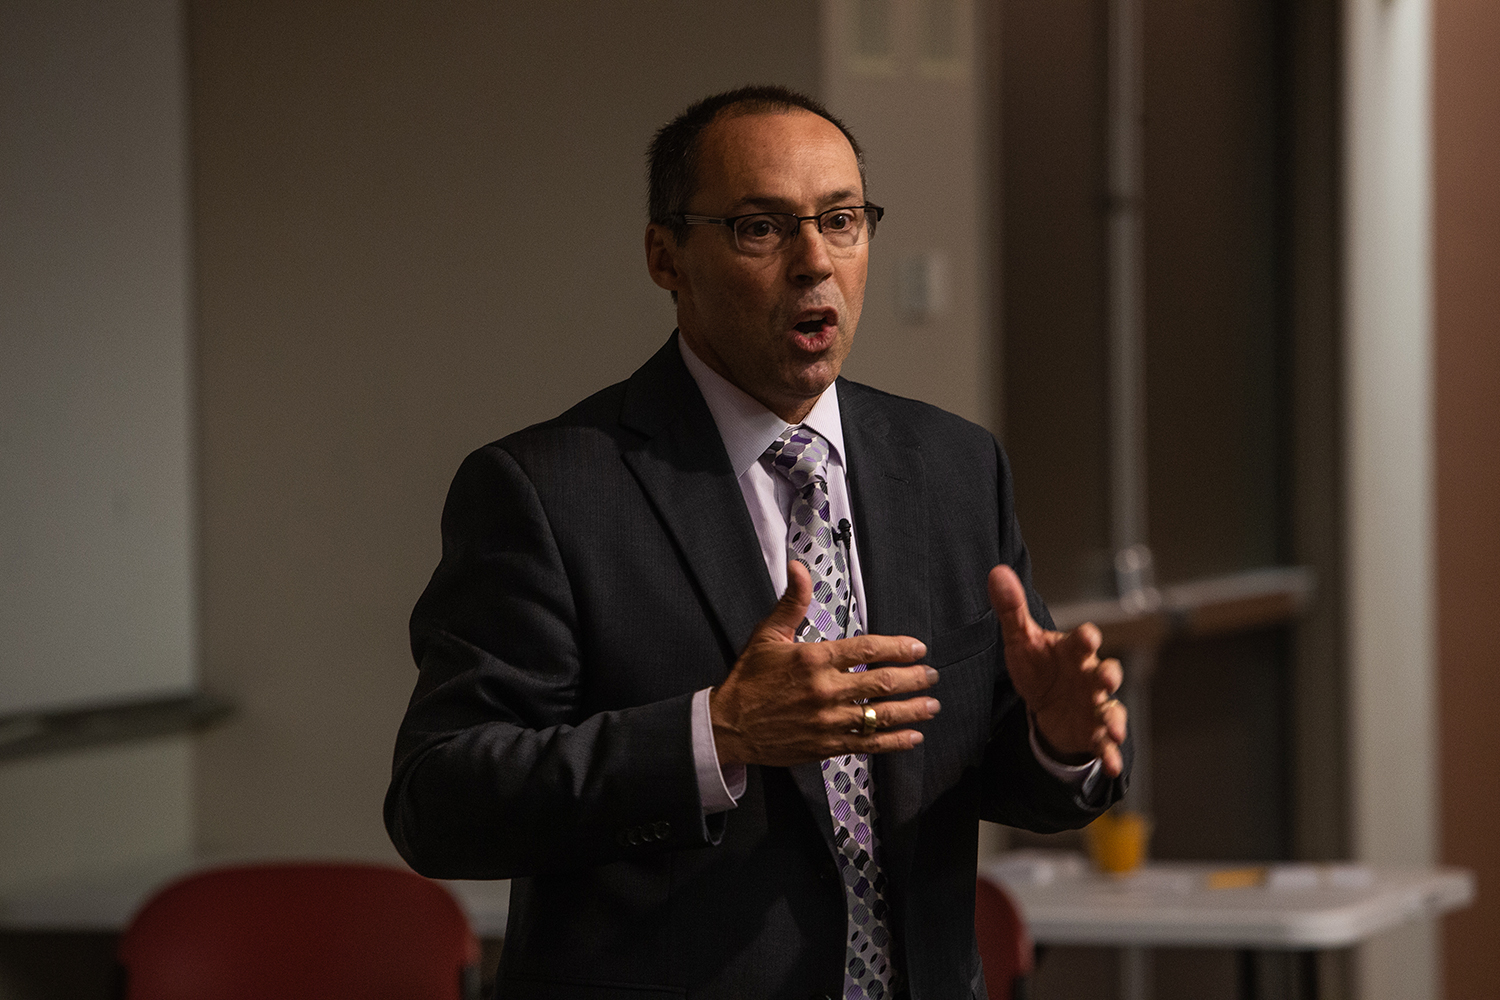 Steve Goddard speaks during a forum as one of four candidates for the University of Iowa's Dean of the College of Liberal Arts and Sciences at Voxman Concert Hall on Tuesday, October 23, 2018. Previously, Goddard has served as the Interim Vice Chancellor for Research and Economic Development for the University of Nebraska-Lincoln.